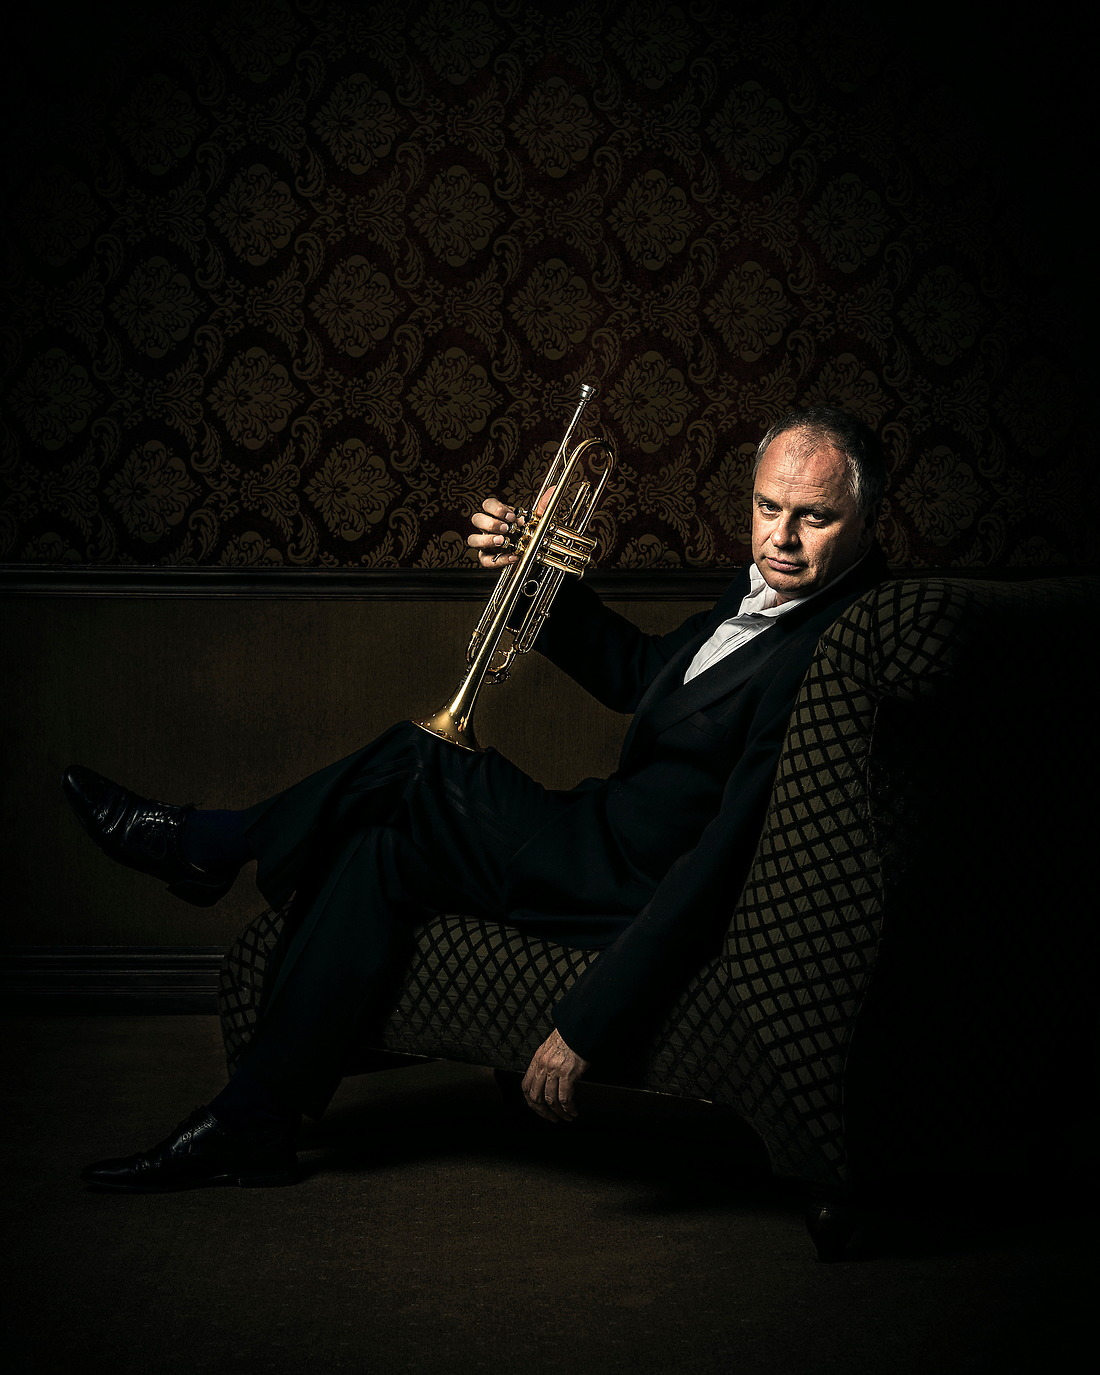 Jens Lindemann International Trumpet Soloist / Clinician and former member of Canadian Brass. — © Jeremy Lock/